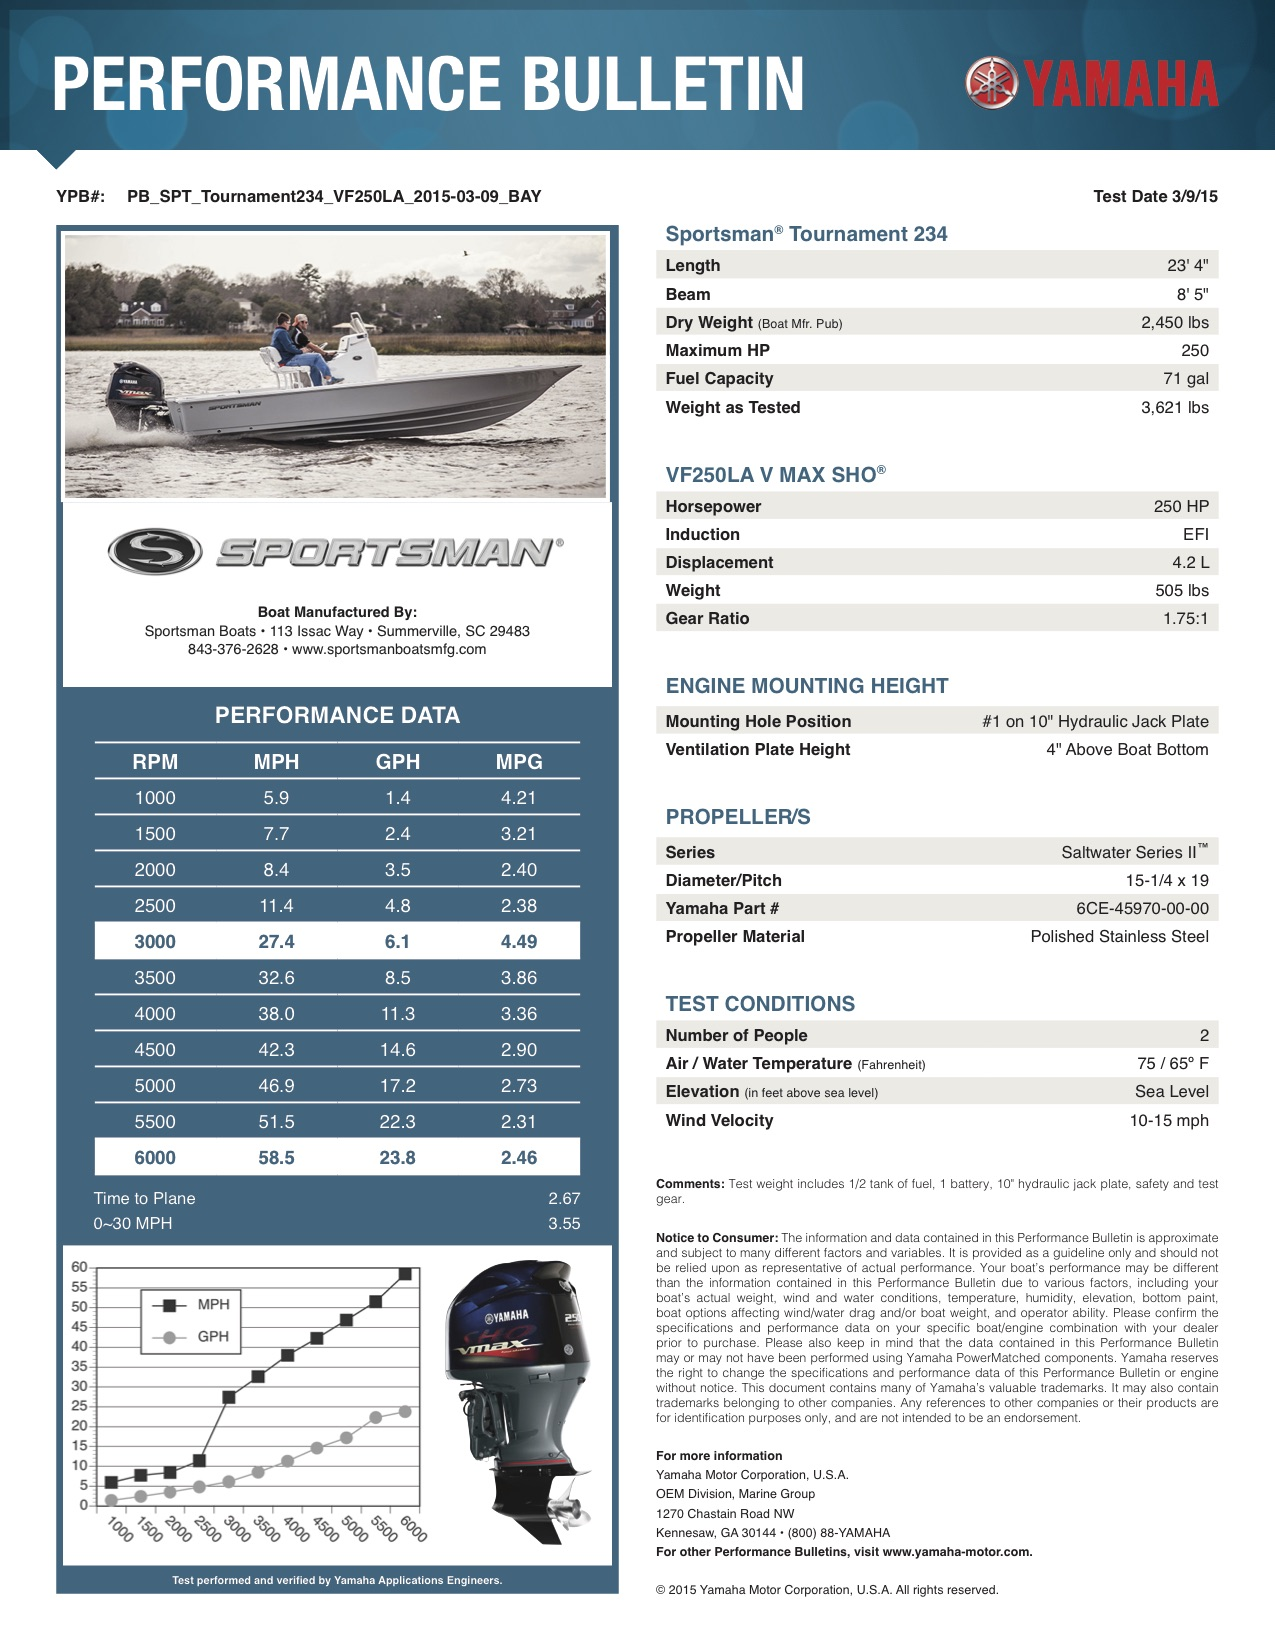 Performance bulletin for 234-bay-boat